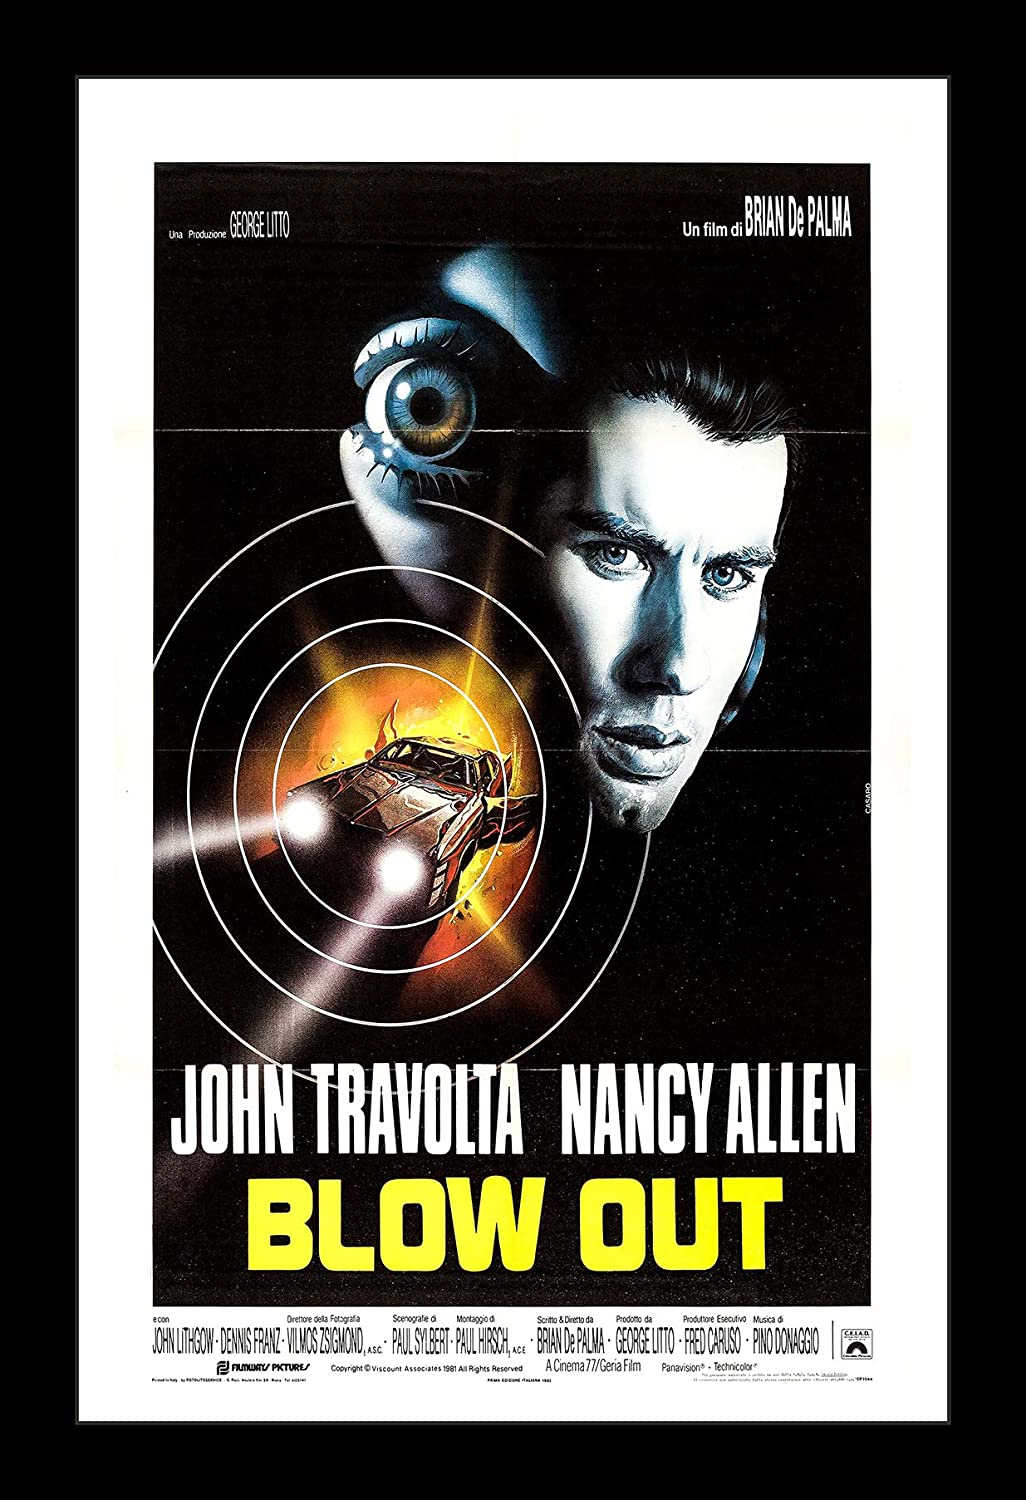 Wallspace 11x17 Framed Movie Poster - Blow Out